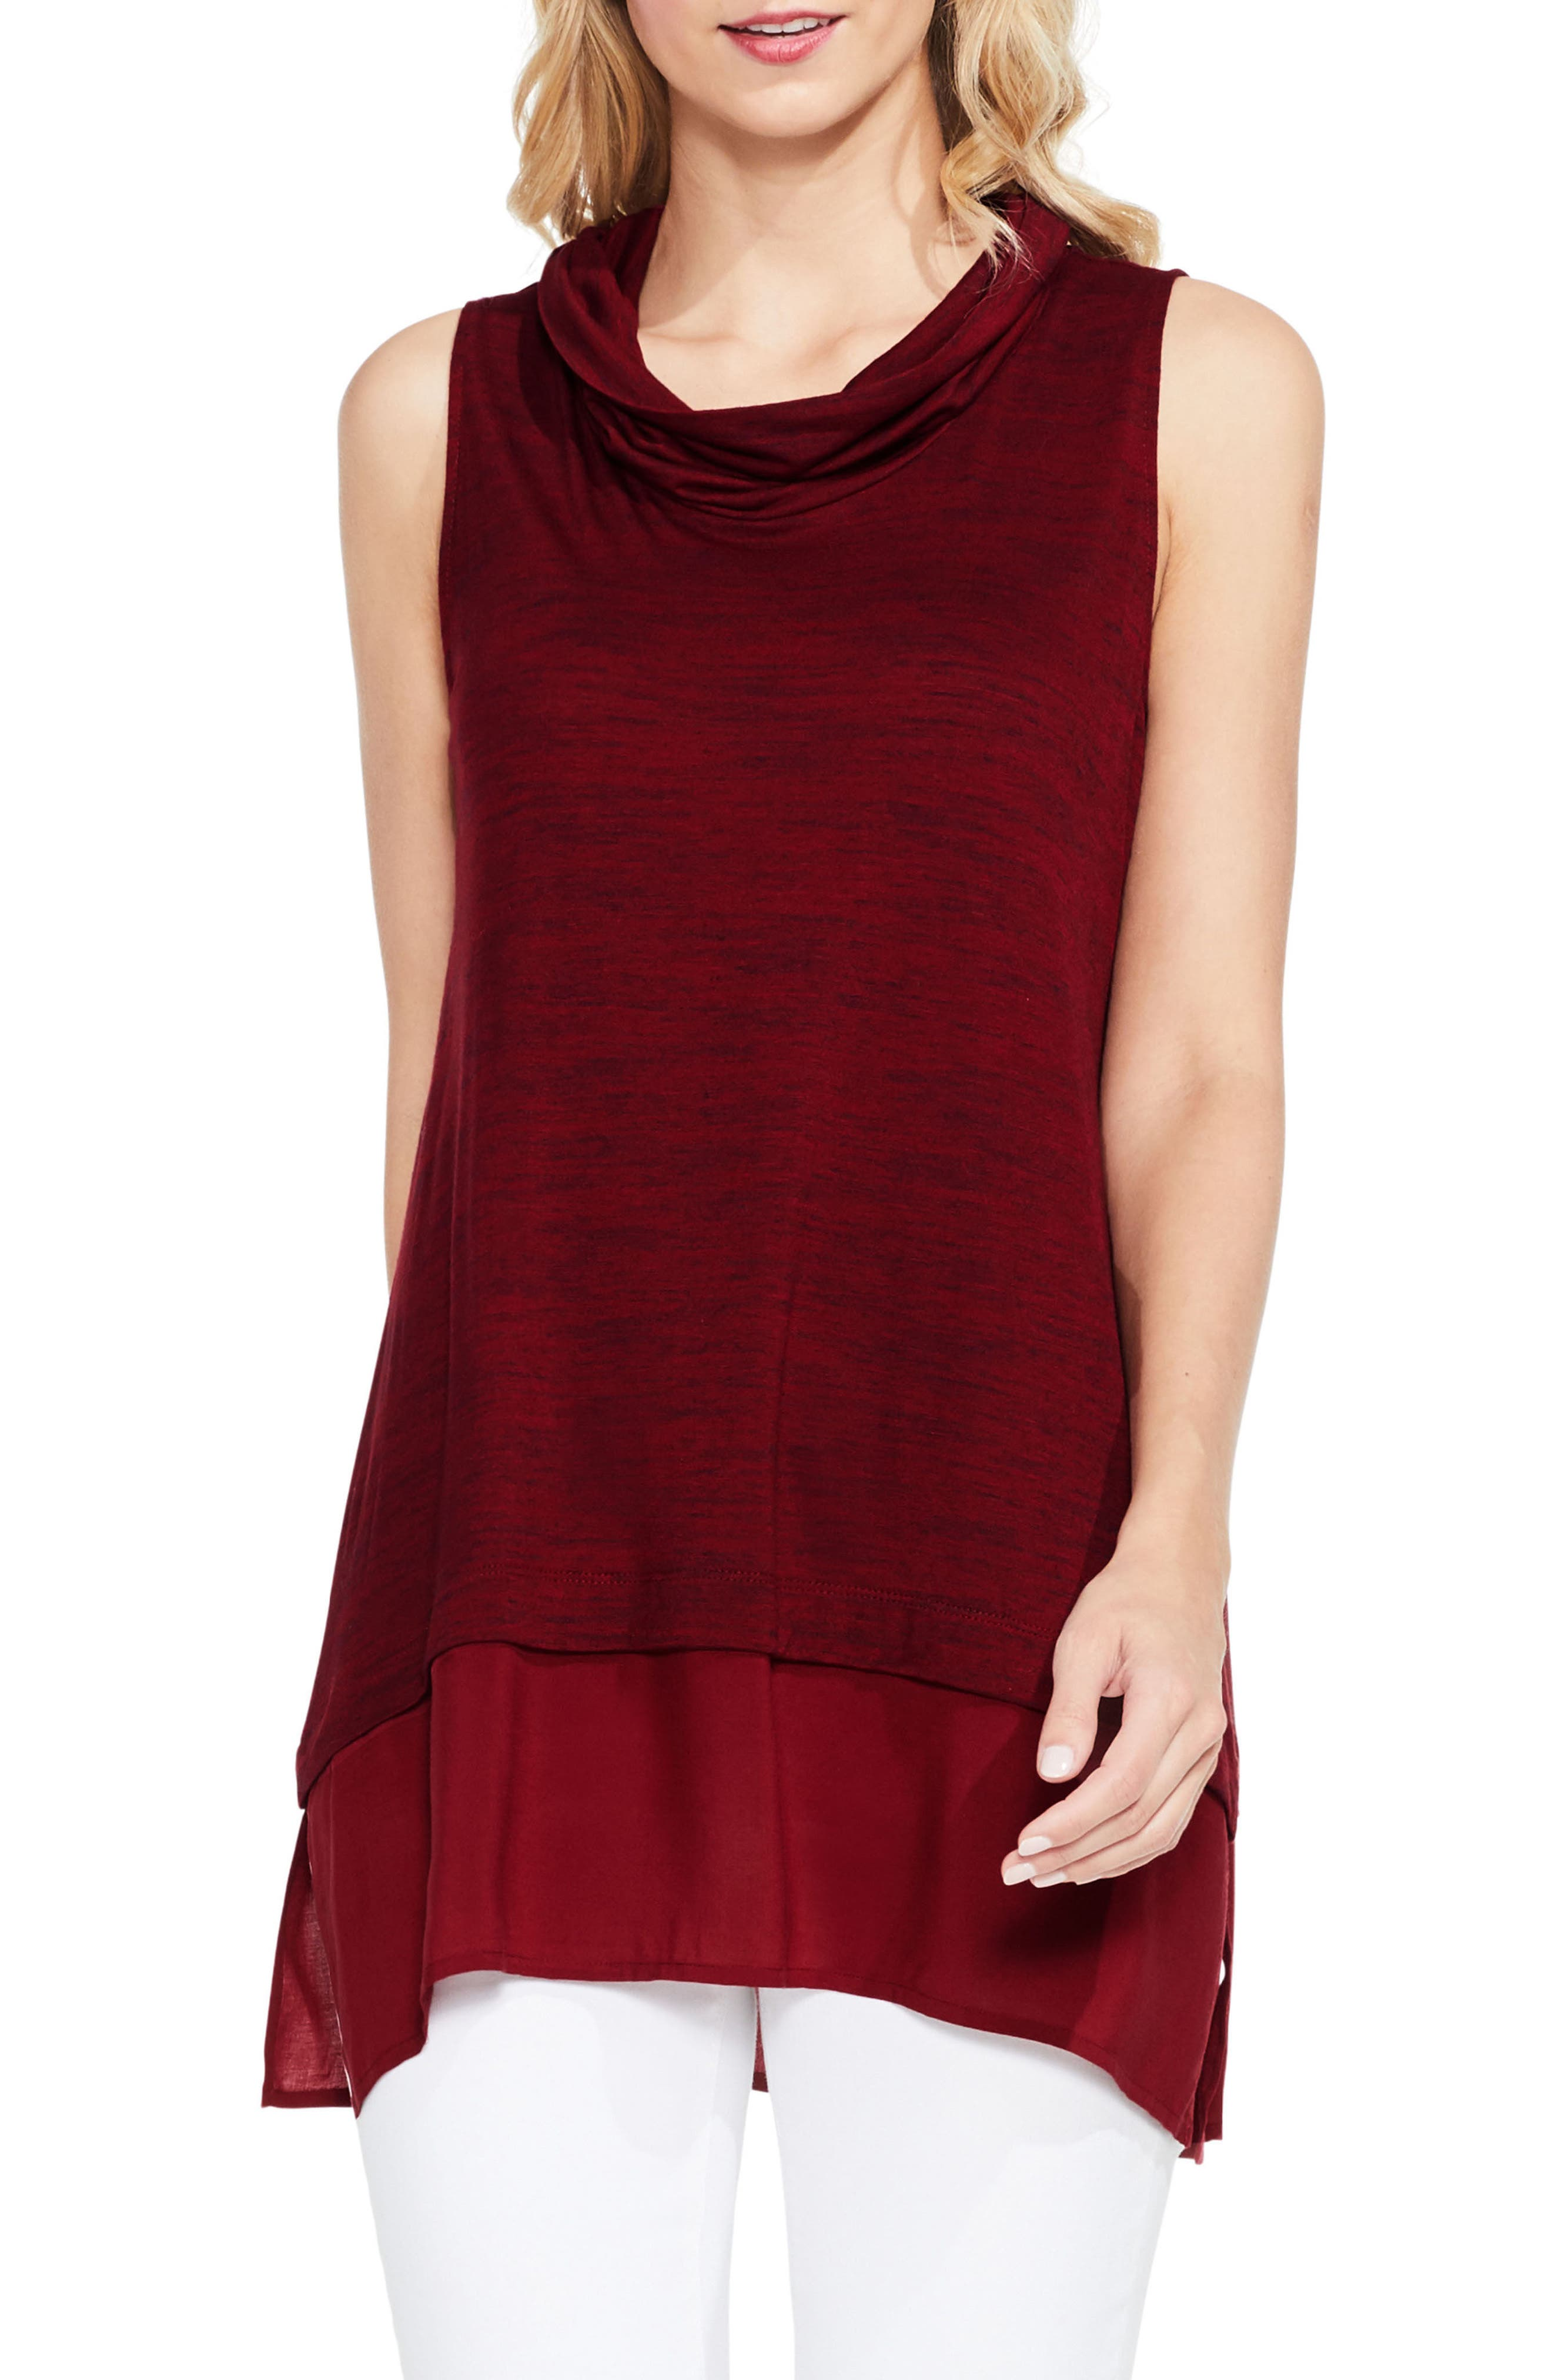 Main Image - Two by Vince Camuto Space Dye Knit Top